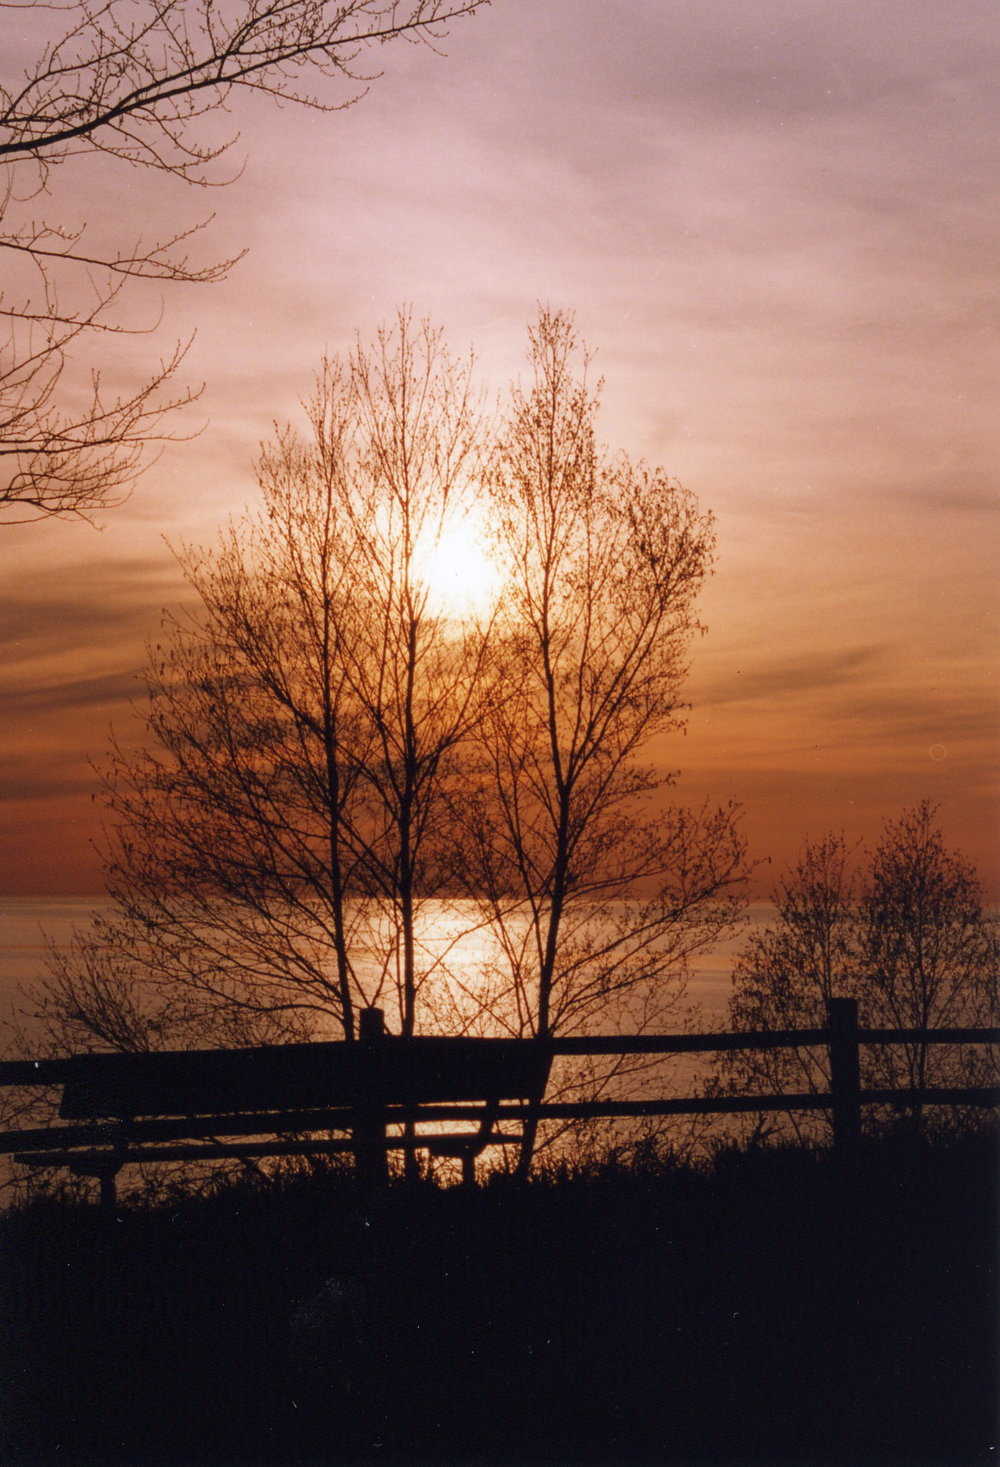 Sunset With Bench - J. Jackson.jpg